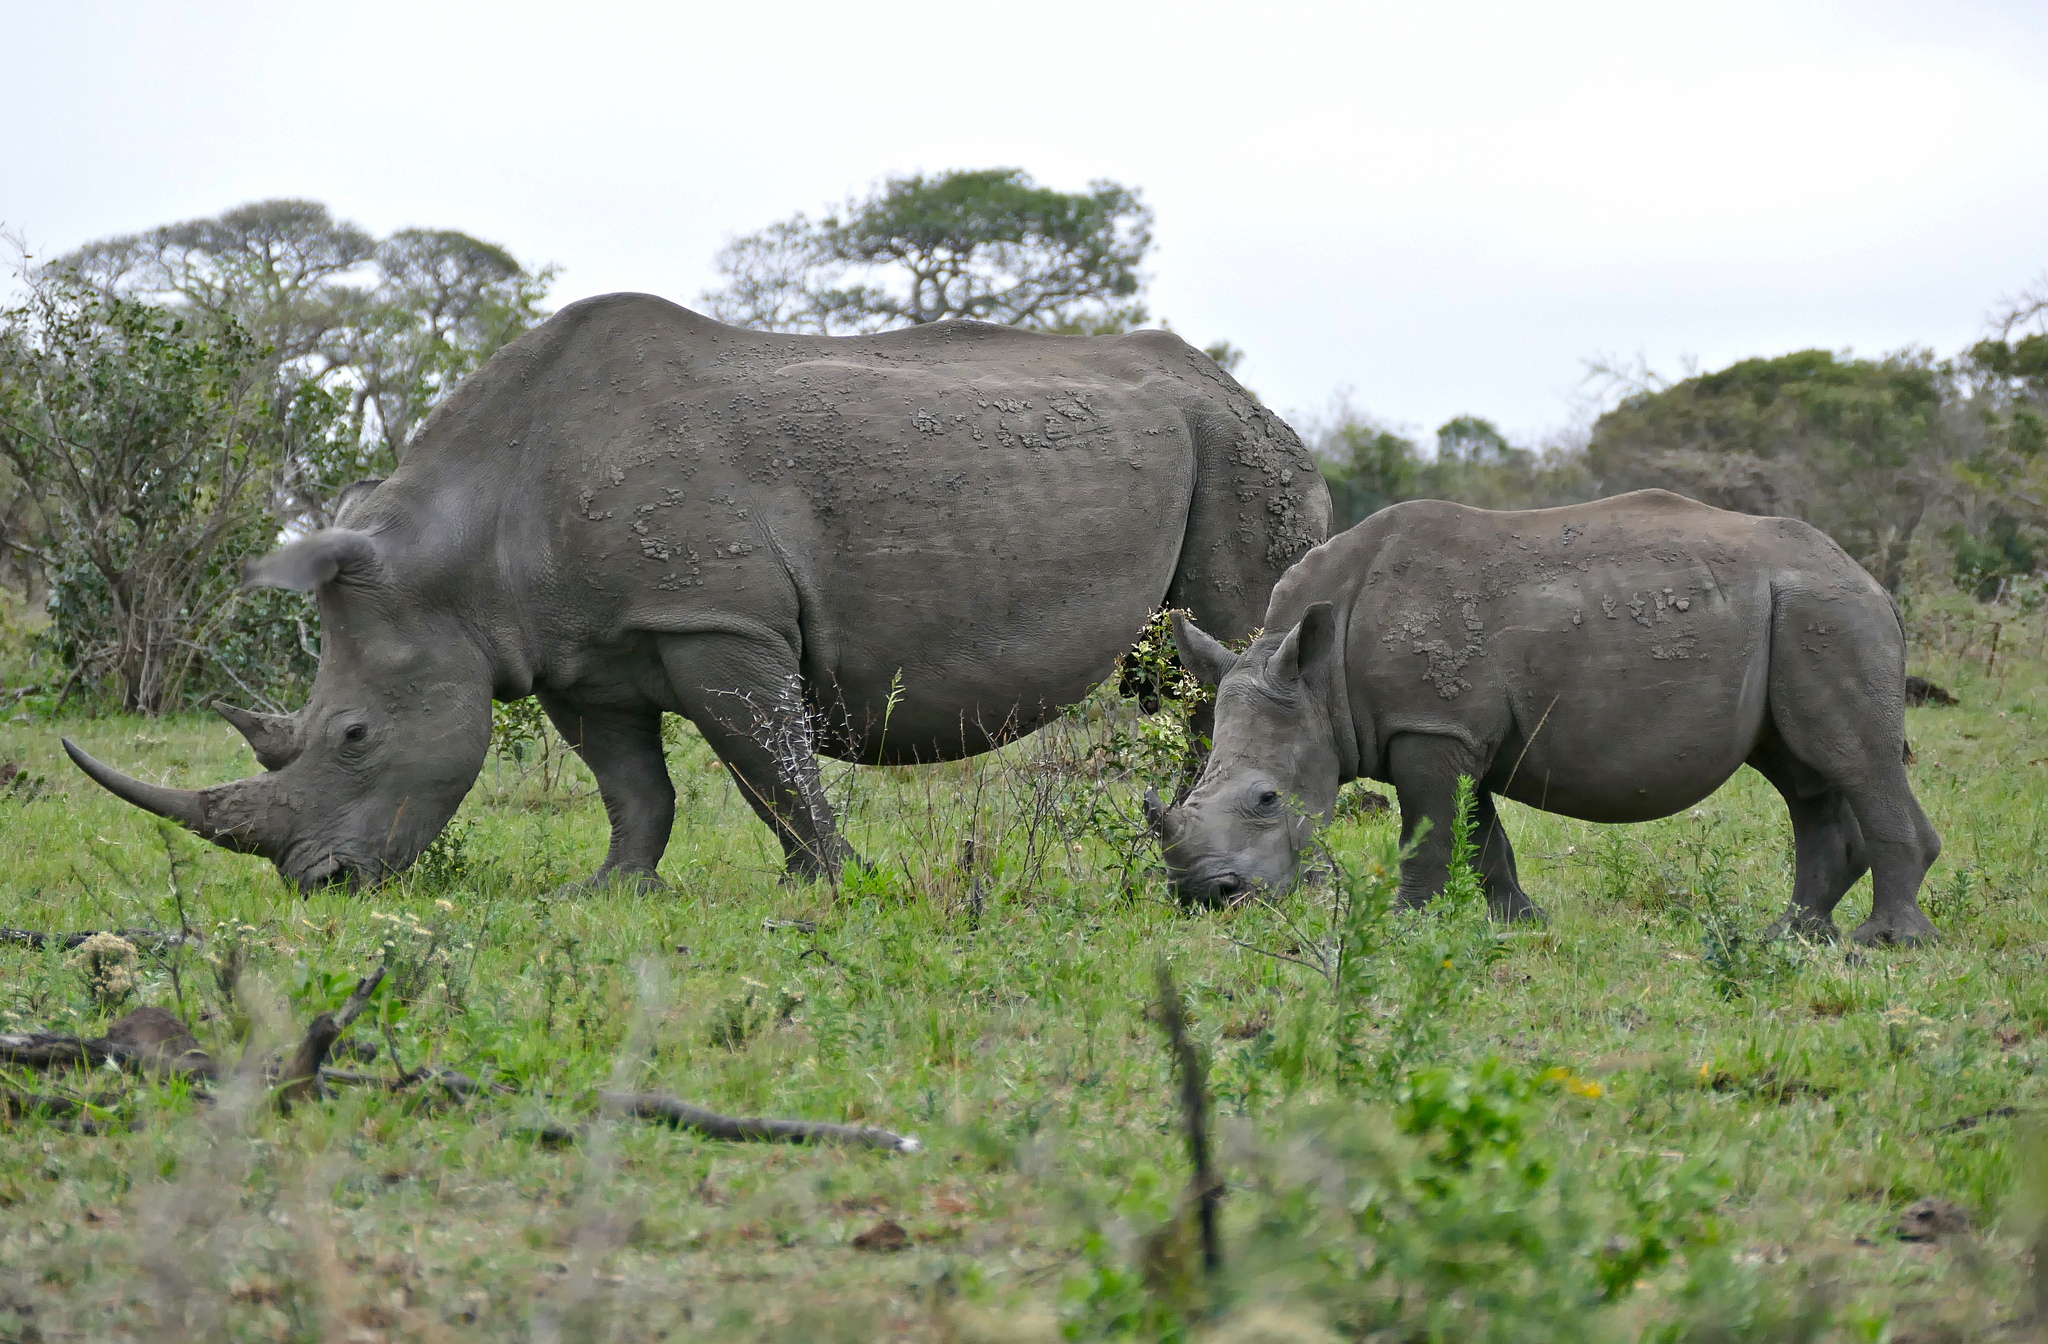 White Rhino female and young in Kwazulu-Natal, South Africa. Image by    Bernard DUPONT via Flickr